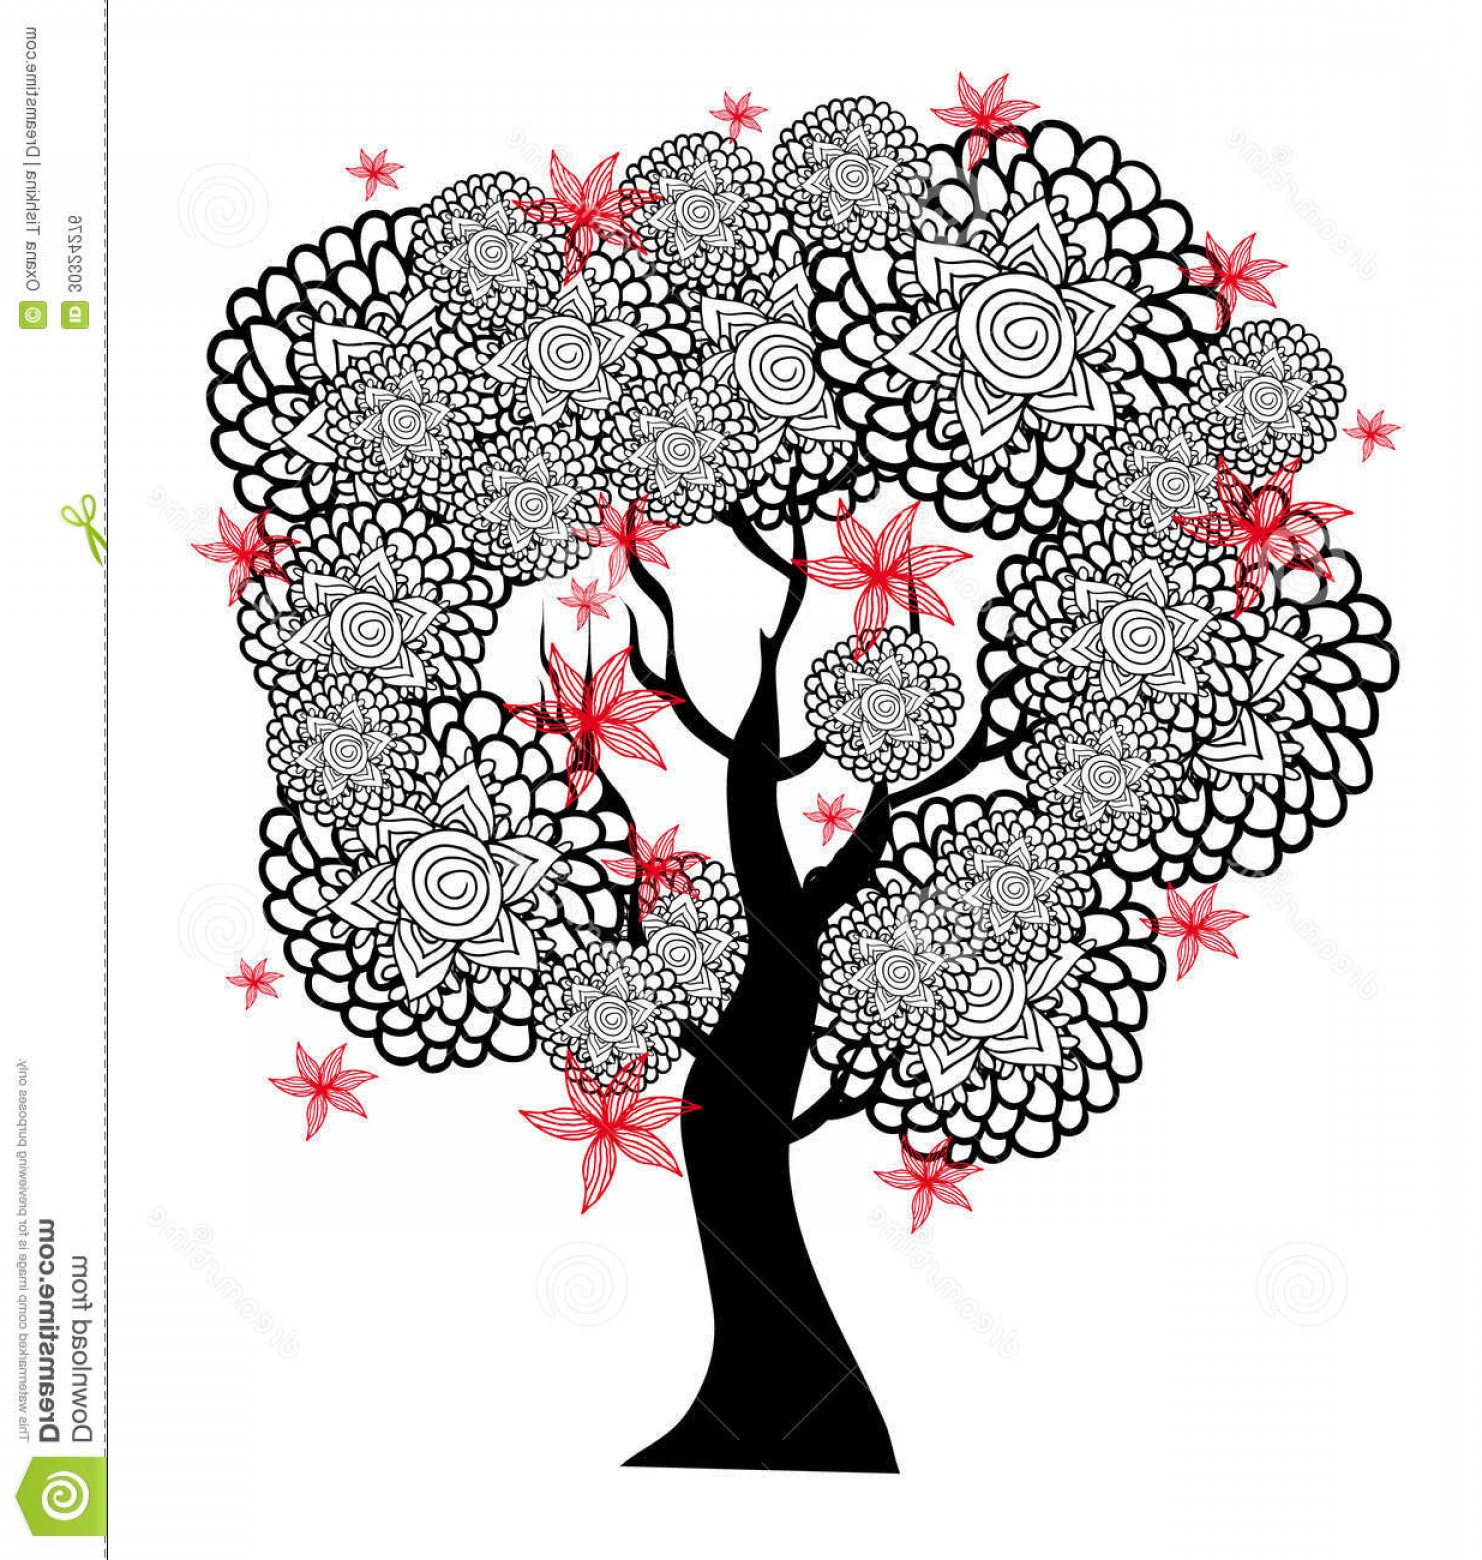 Red Black And White Vector Art: Royalty Free Stock Image Fantastic Black White Tree Red Flowers Vector Graphic Image Stylized Image